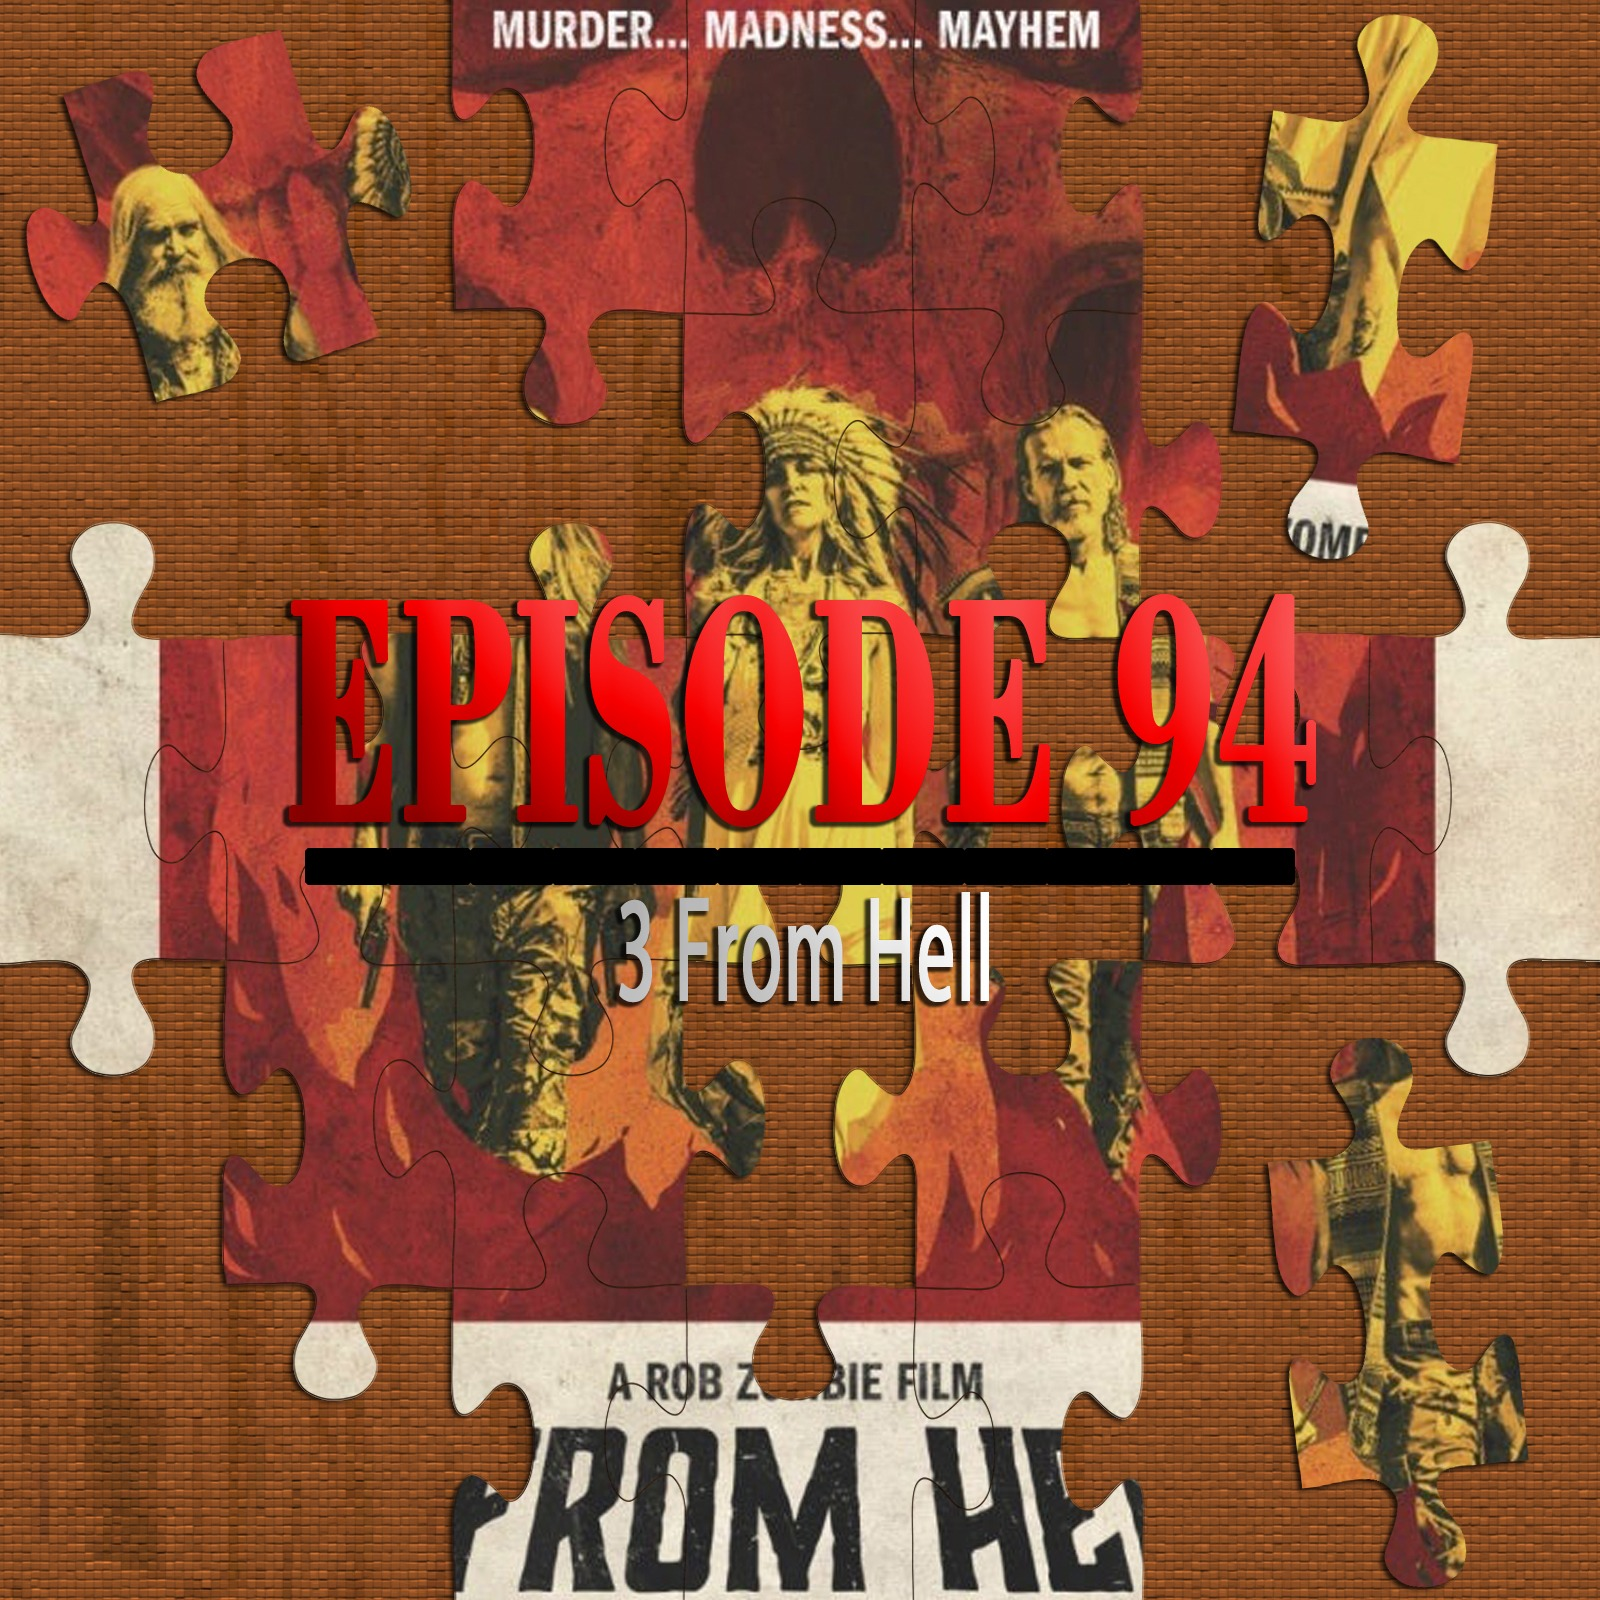 3 From Hell (Featuring Joe Black & Adam Wells)